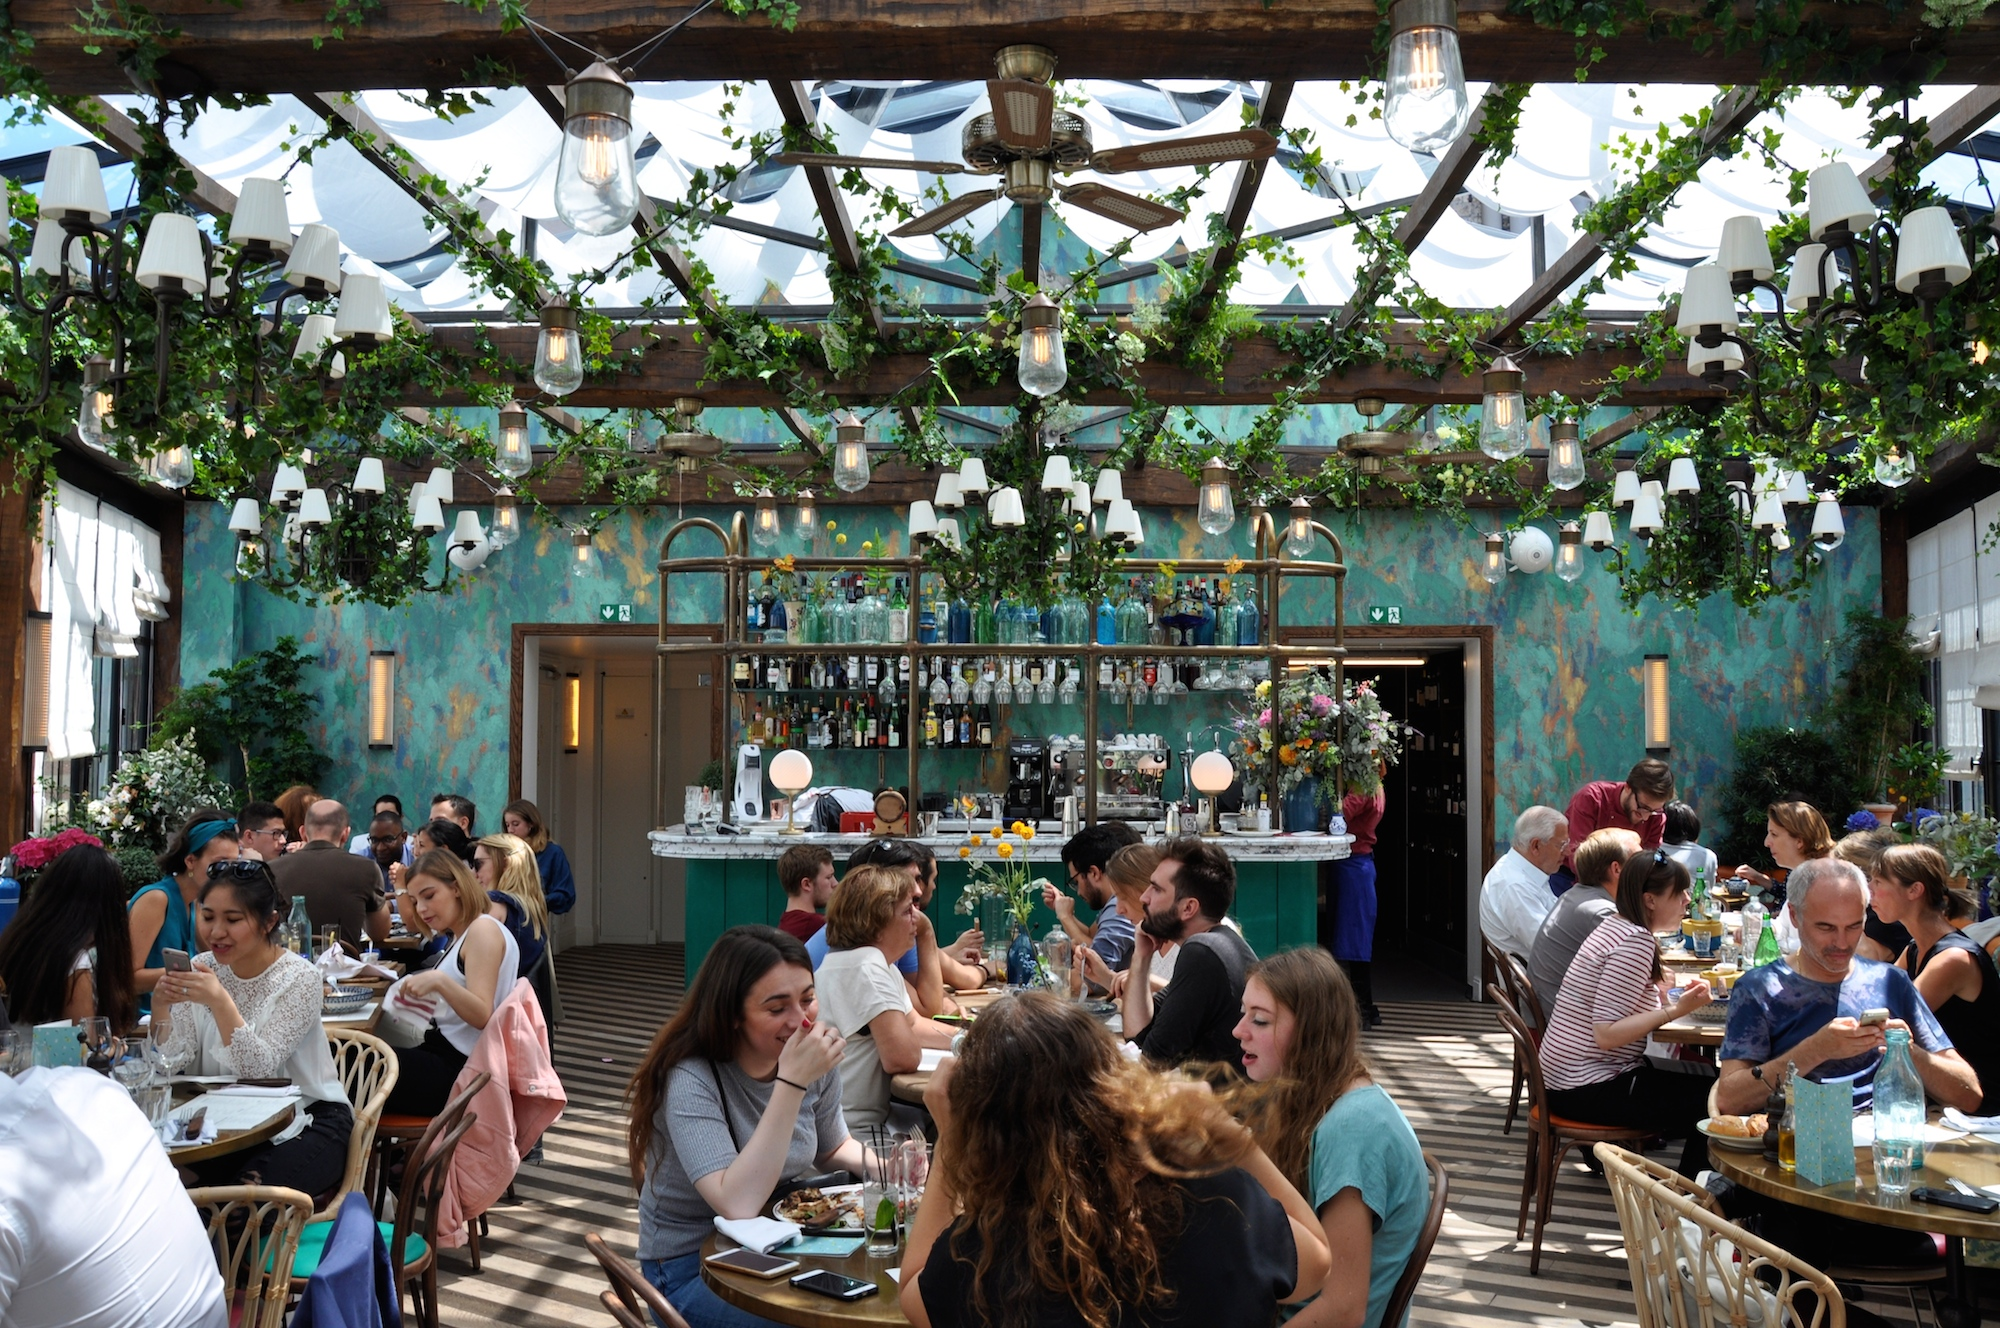 The Big Mamma Group offers Trendy, Fresh, Authentic Italian Dining in Paris at several locations including Pink Mamma in South Pigalle, where there are tables under a glass roof adorned with plants.